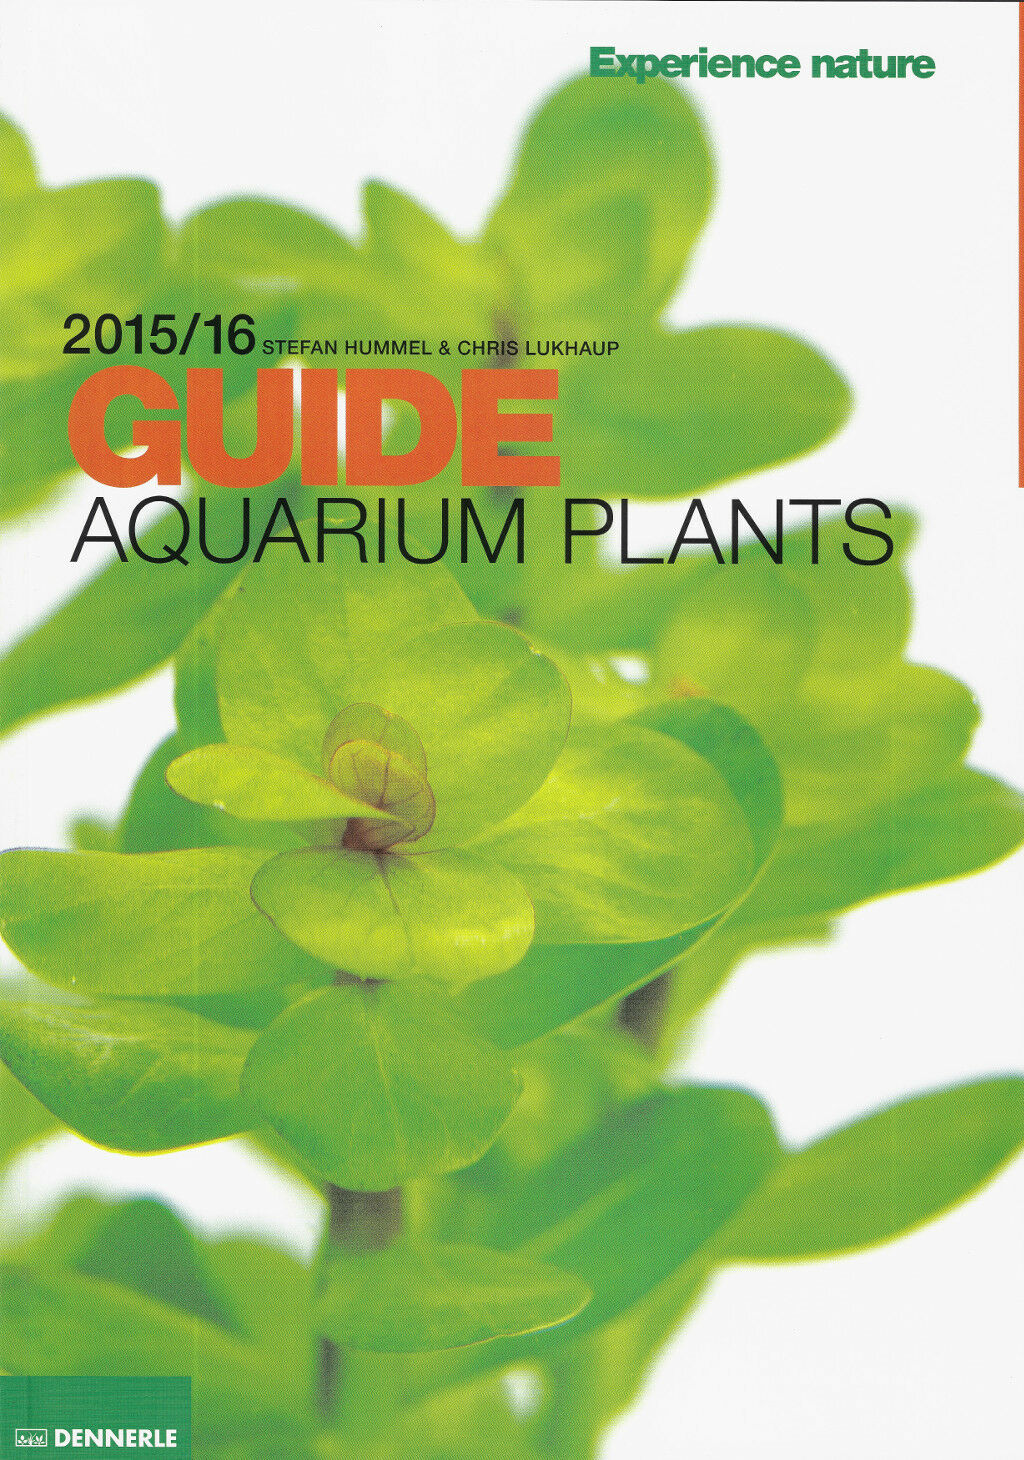 New Dennerle Aquarium Plant Guide 2015/2016 - Over 670 images on 148 full pages